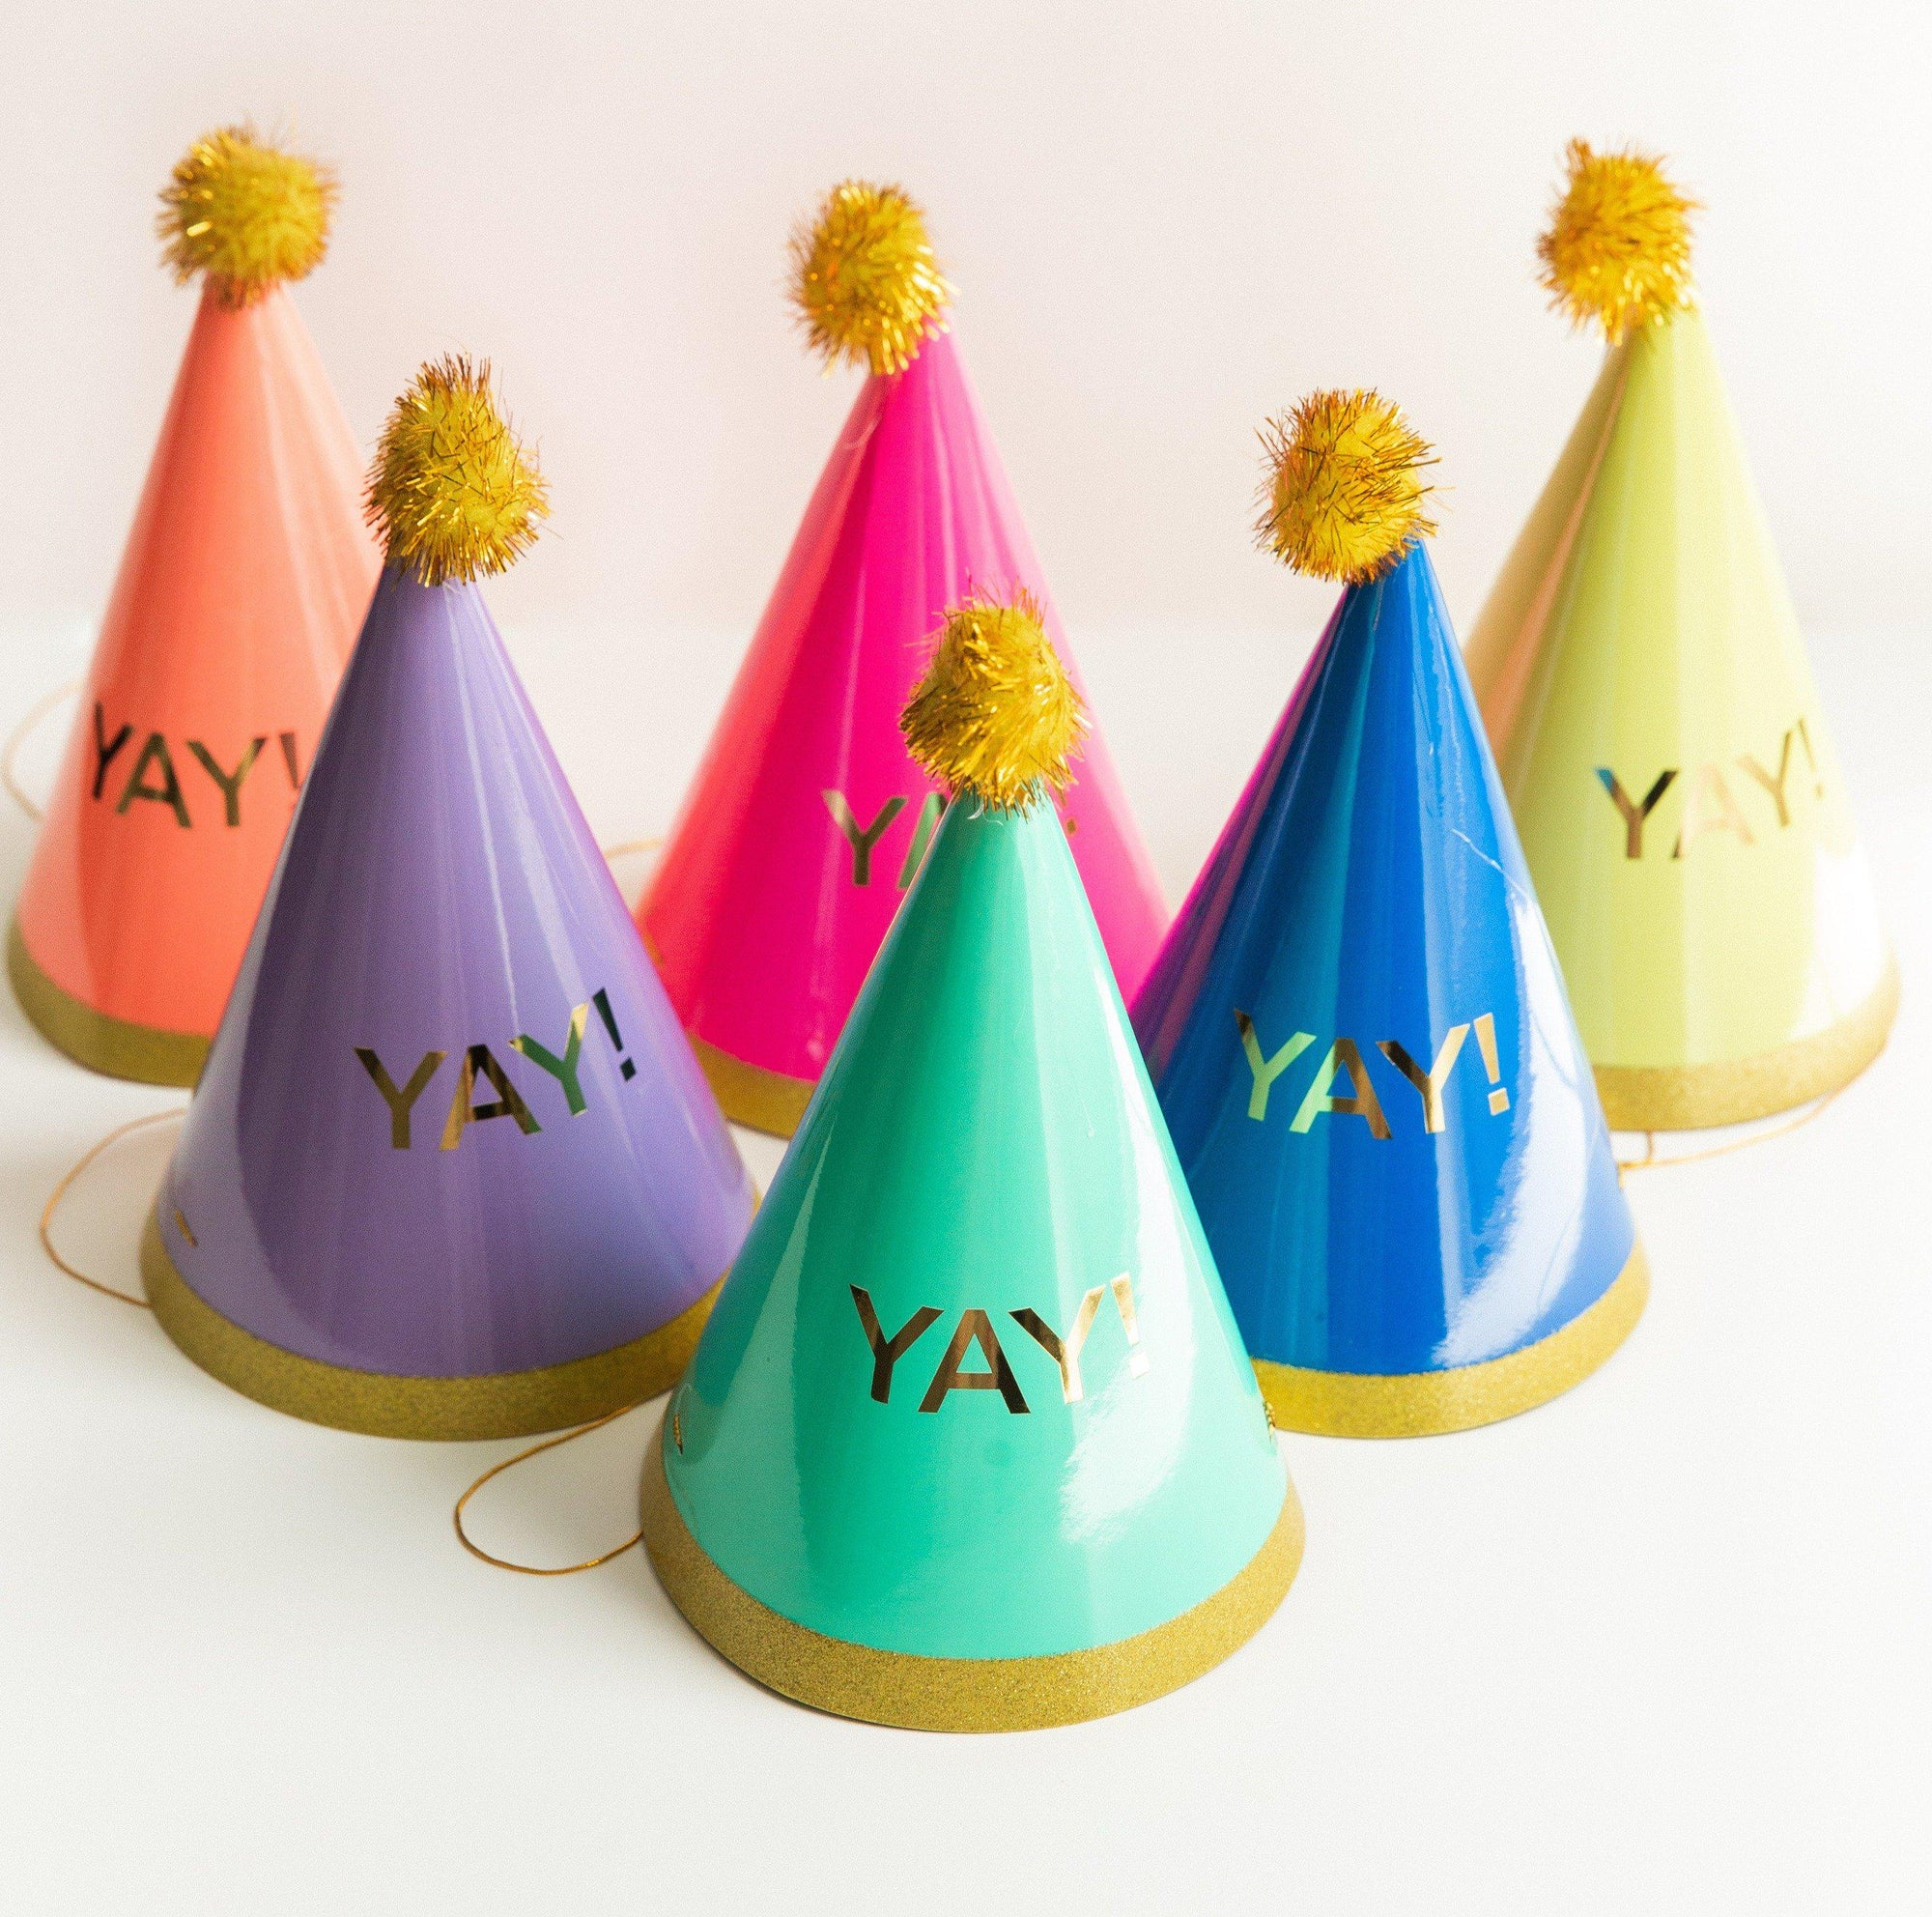 Party Hats with Gold Poms and the word Yay